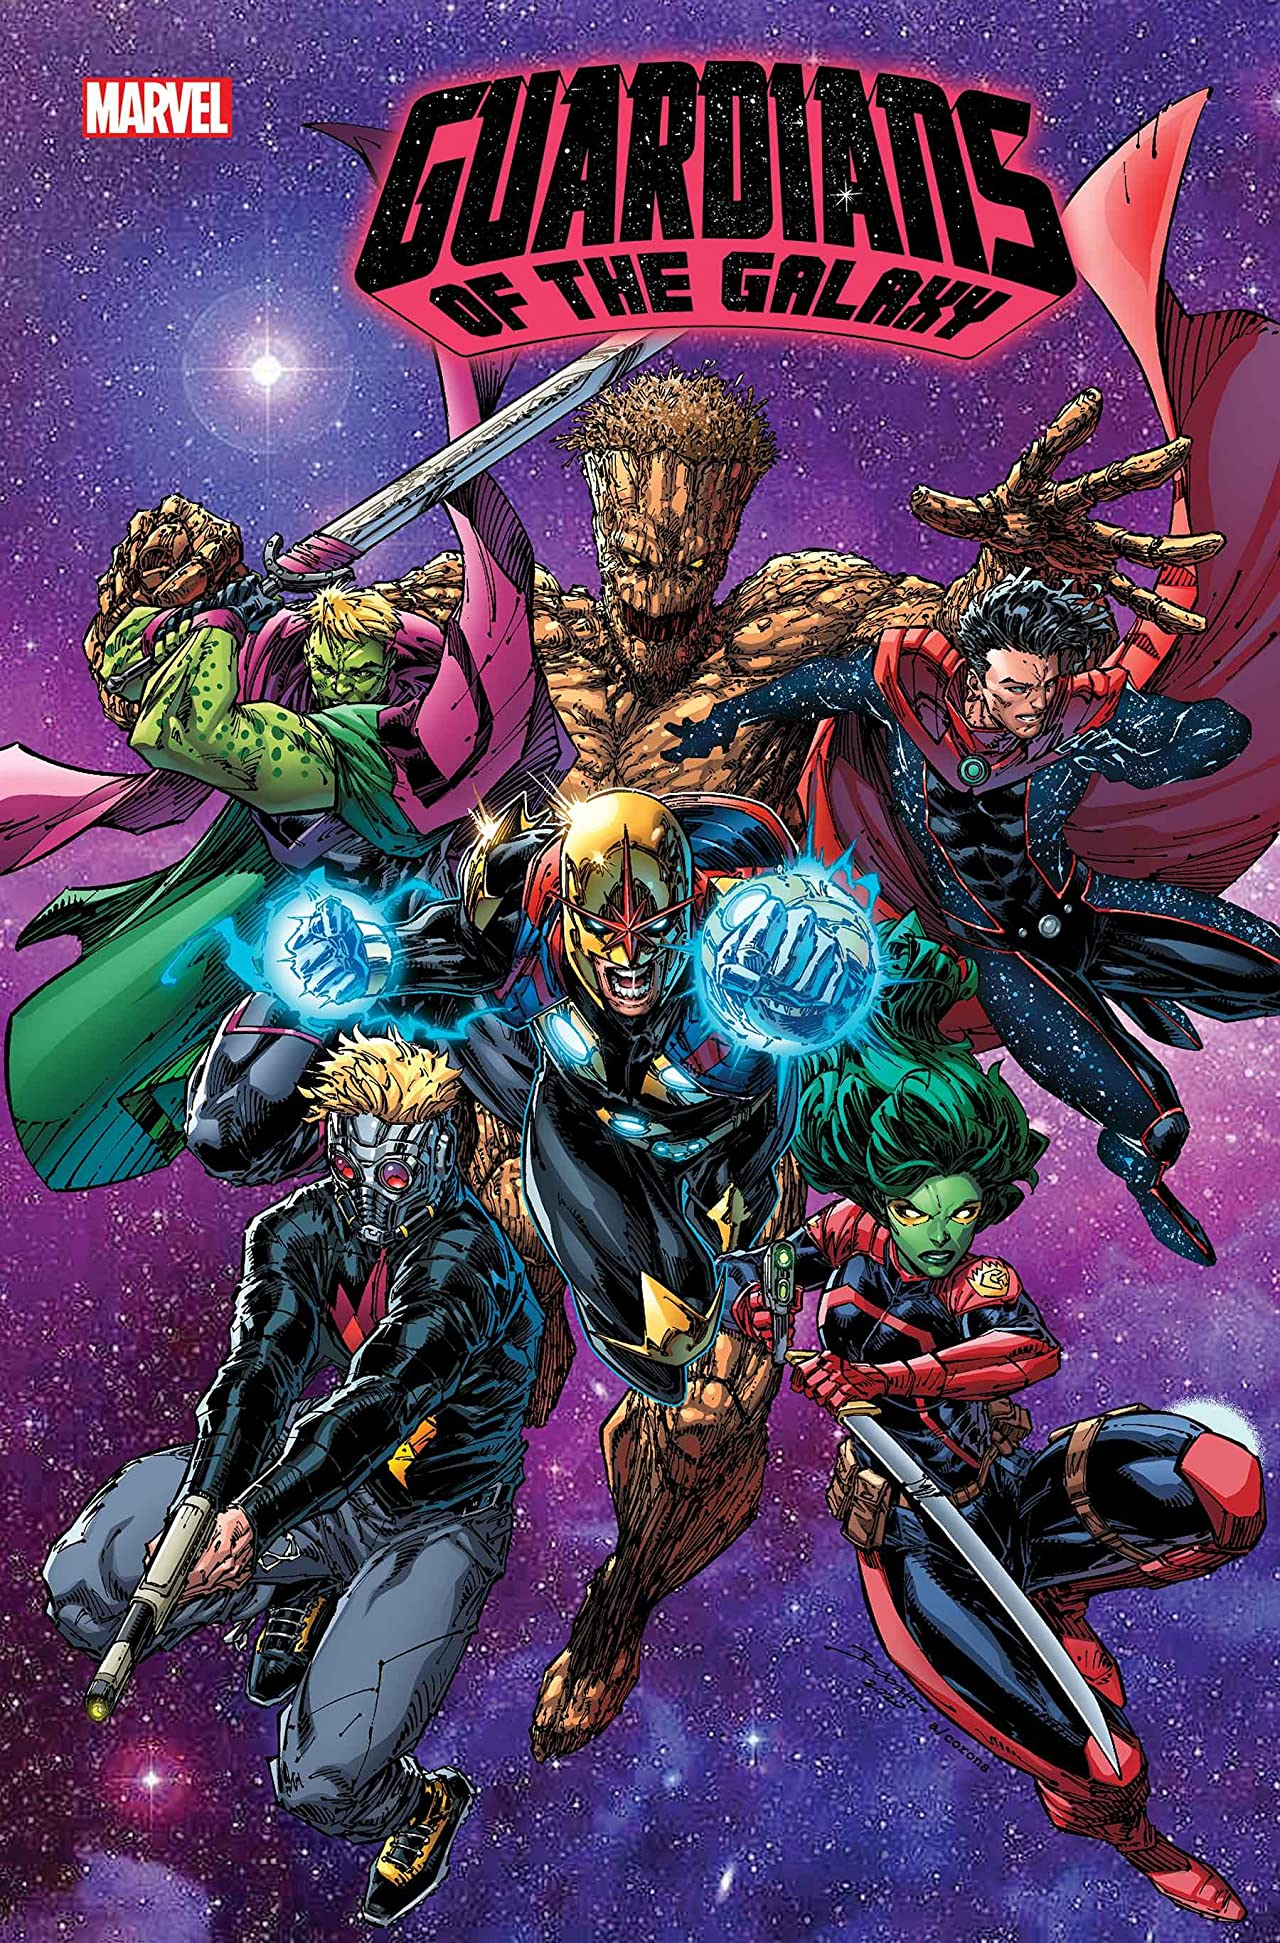 Marvel First Look: Guardians of the Galaxy #13